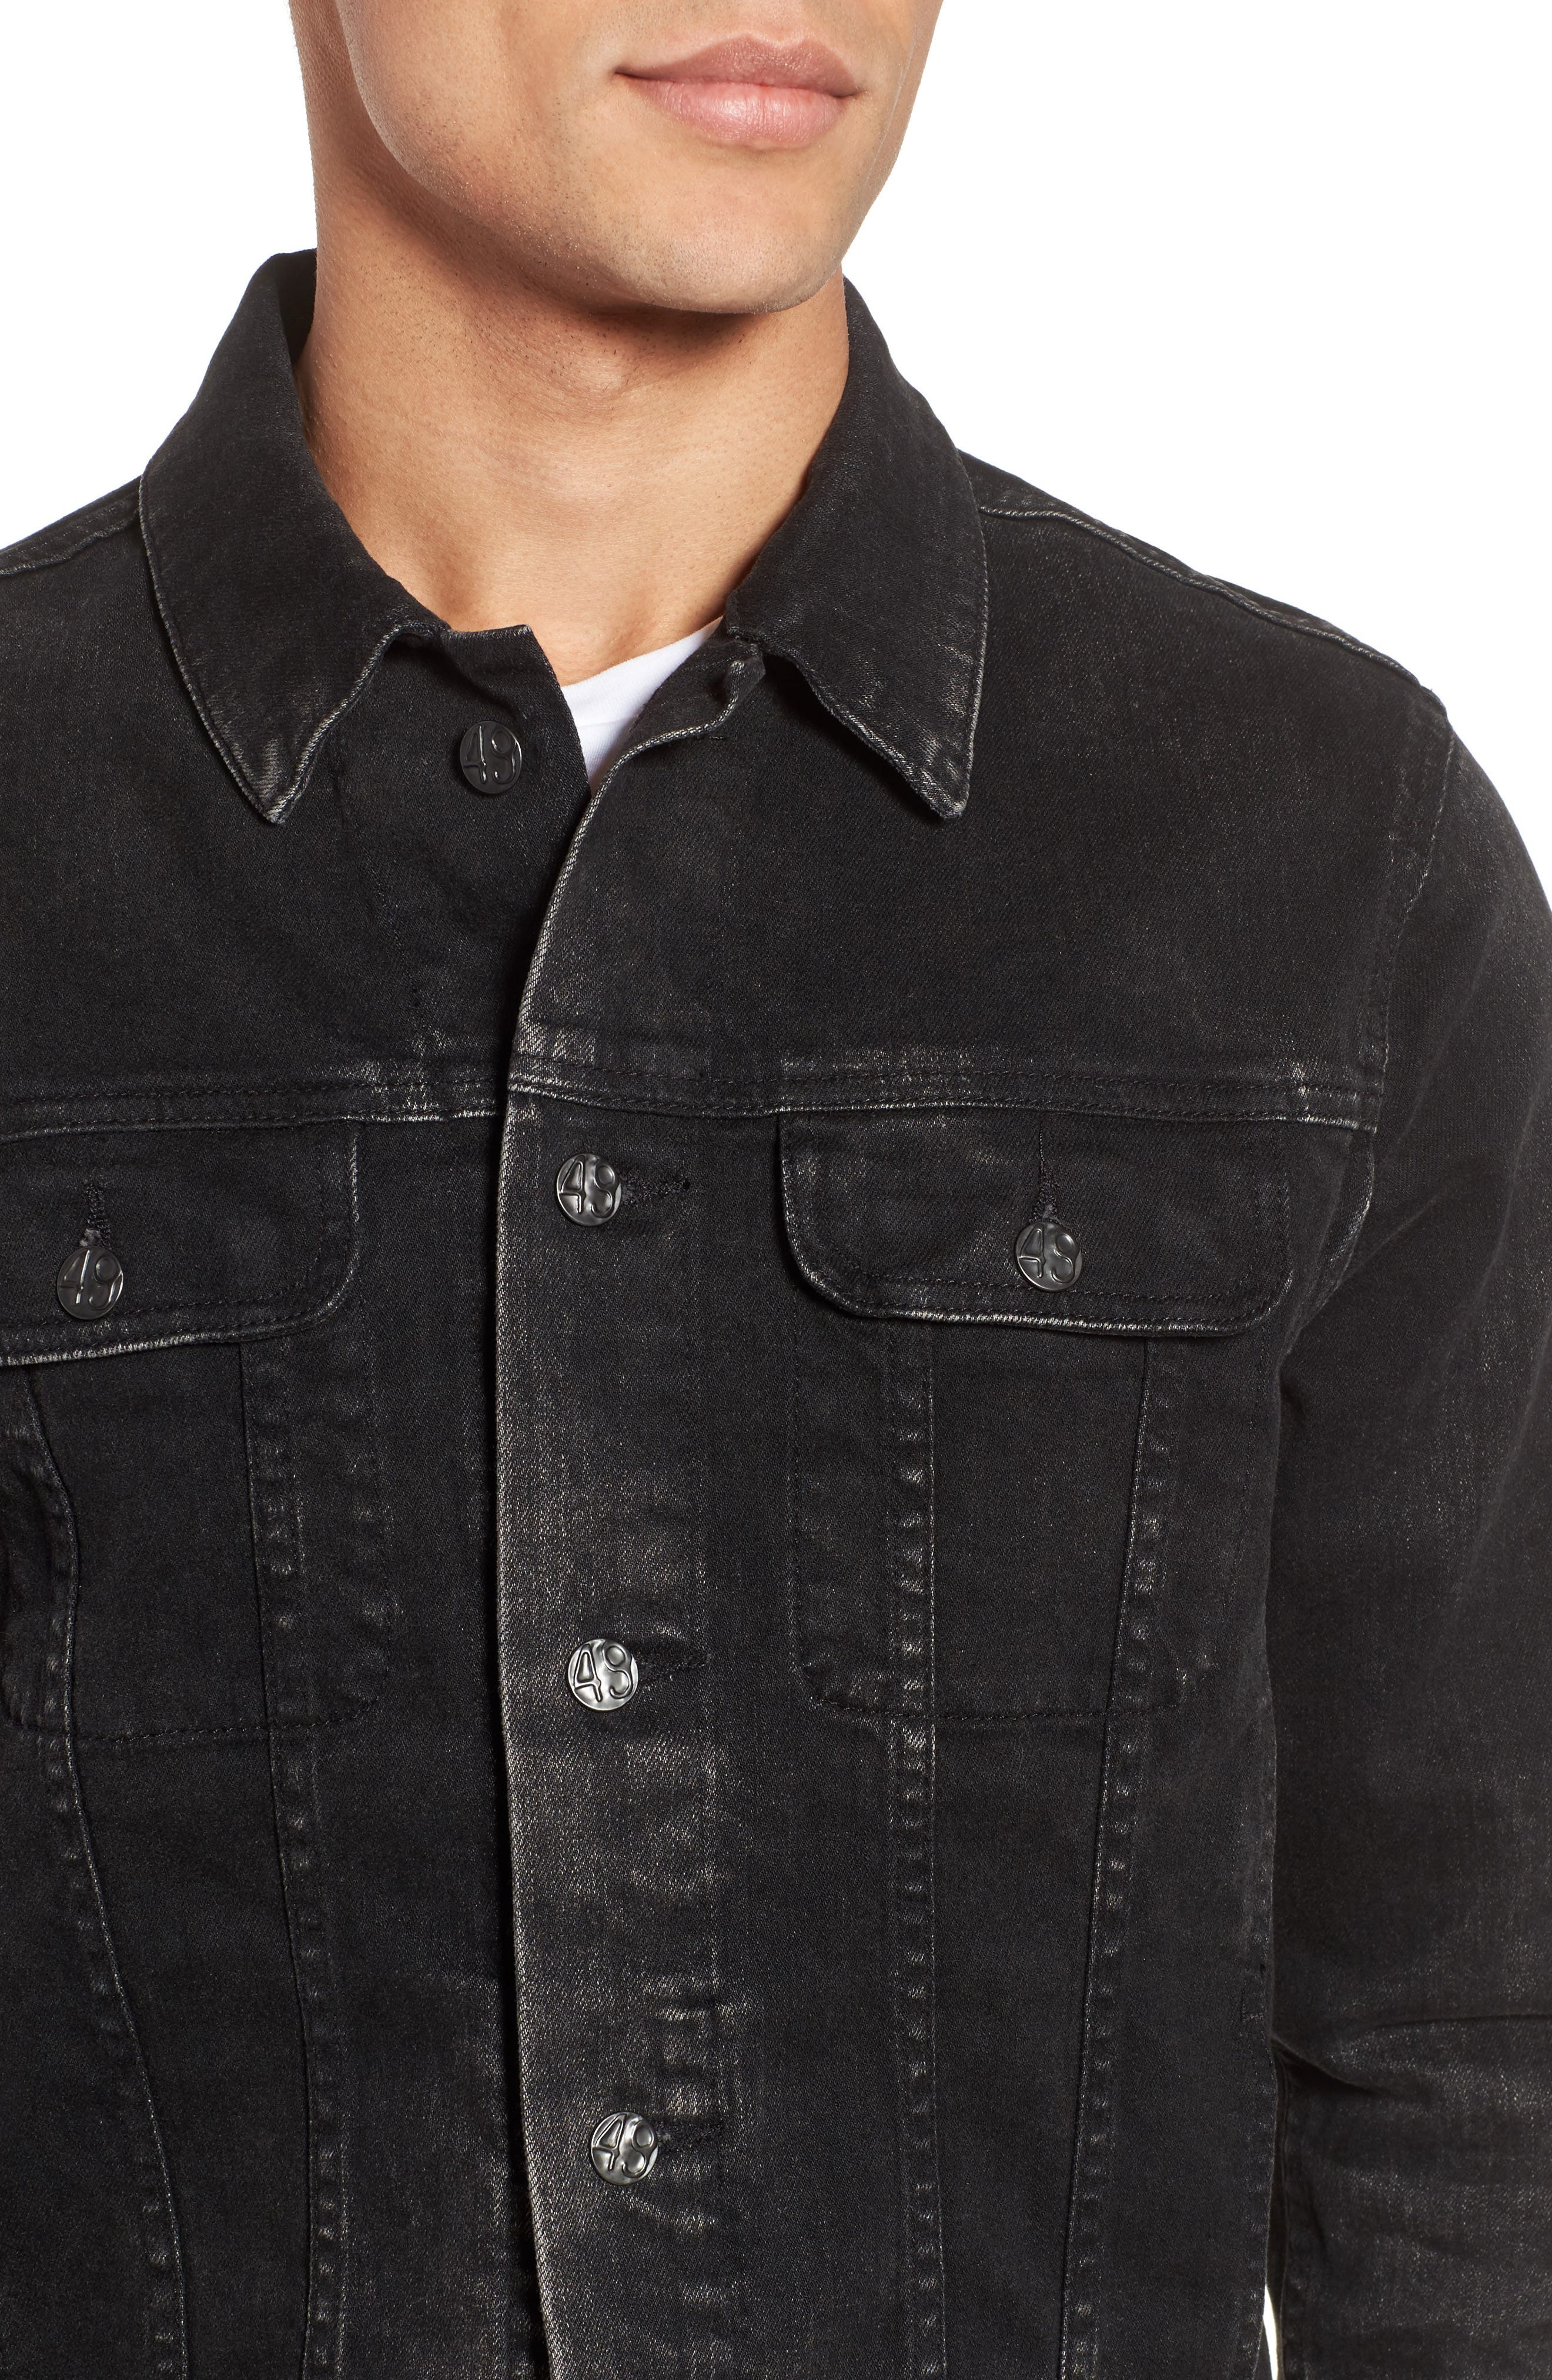 Dart Denim Jacket,                             Alternate thumbnail 4, color,                             9 Years Clouded